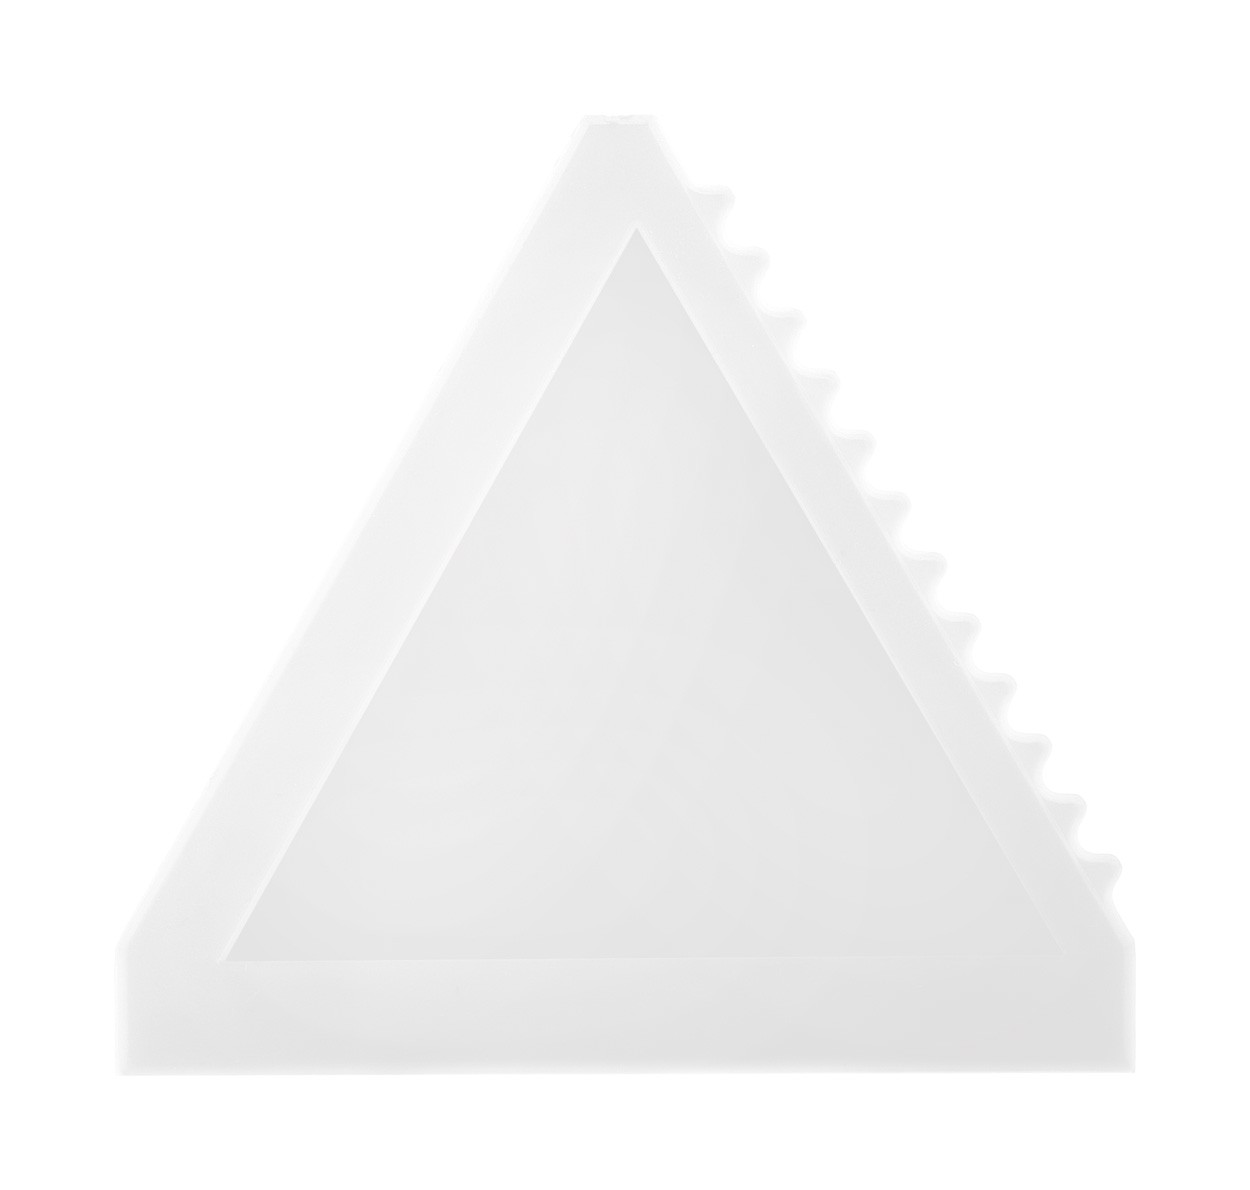 Ice Scraper Tri Scrap - White